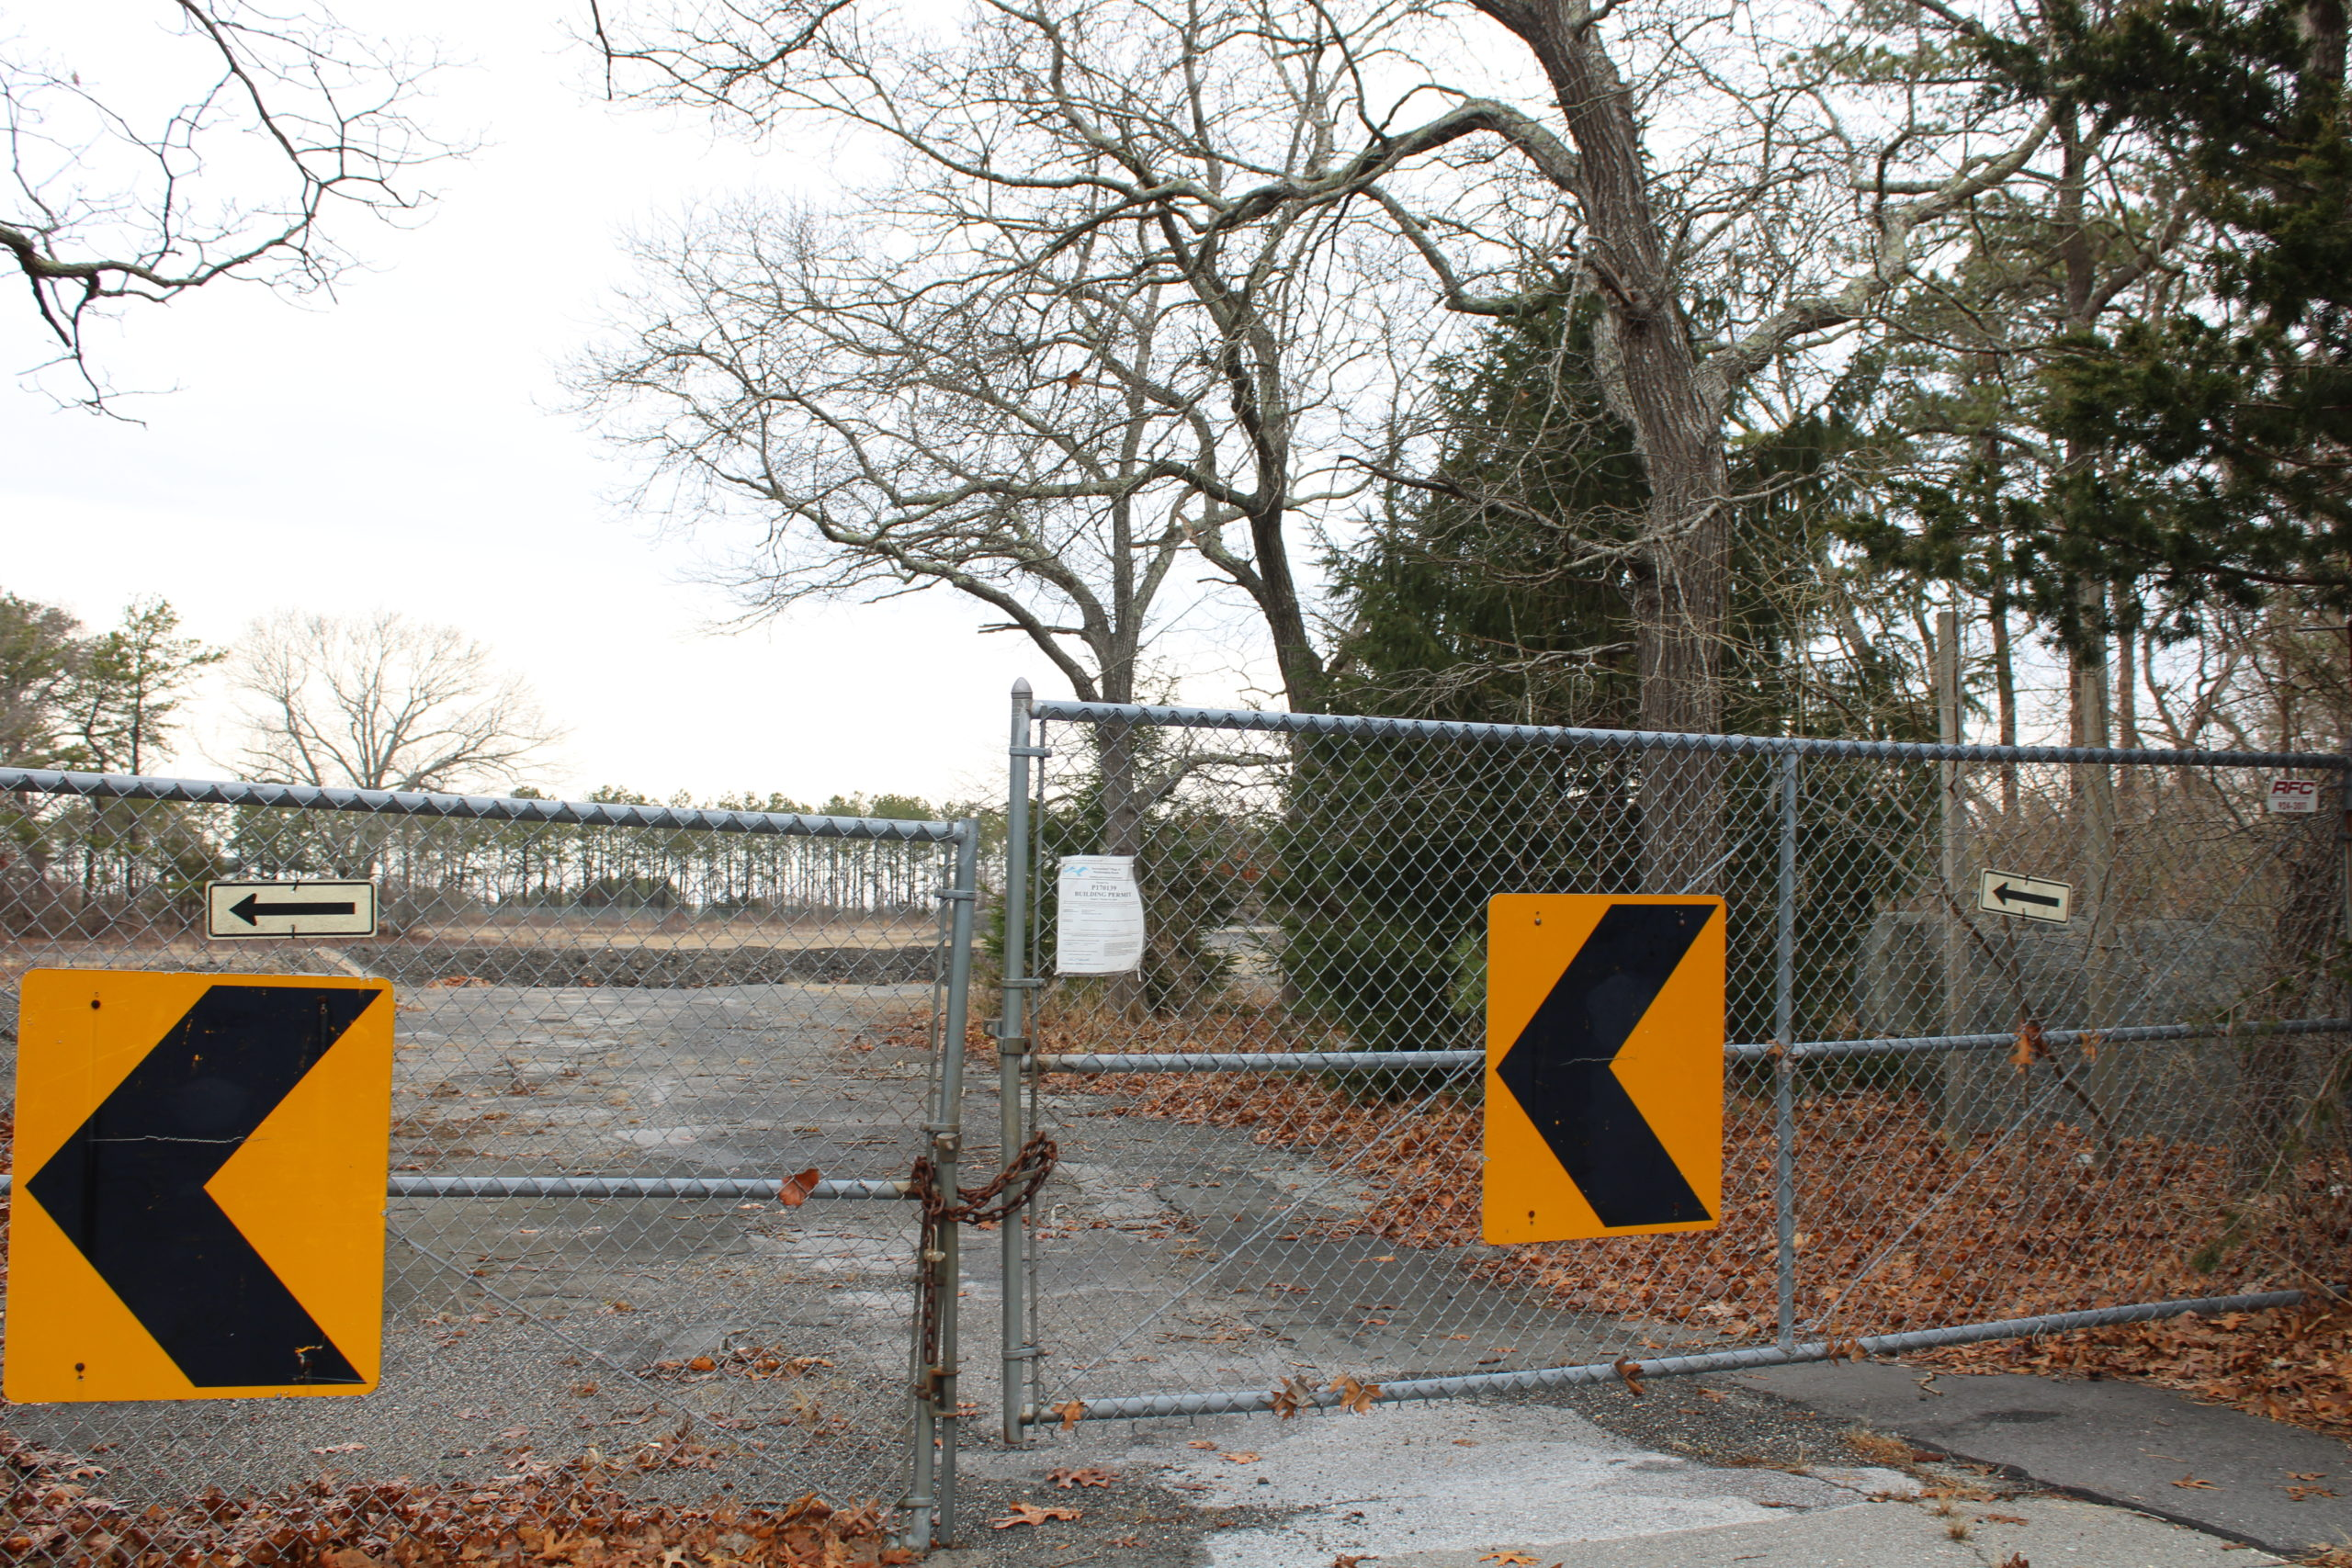 Westhampton Beach Planning Board adresssed the proposed 52-unit dwelling and community center on Rogers Avenue, no final decisions have been made.